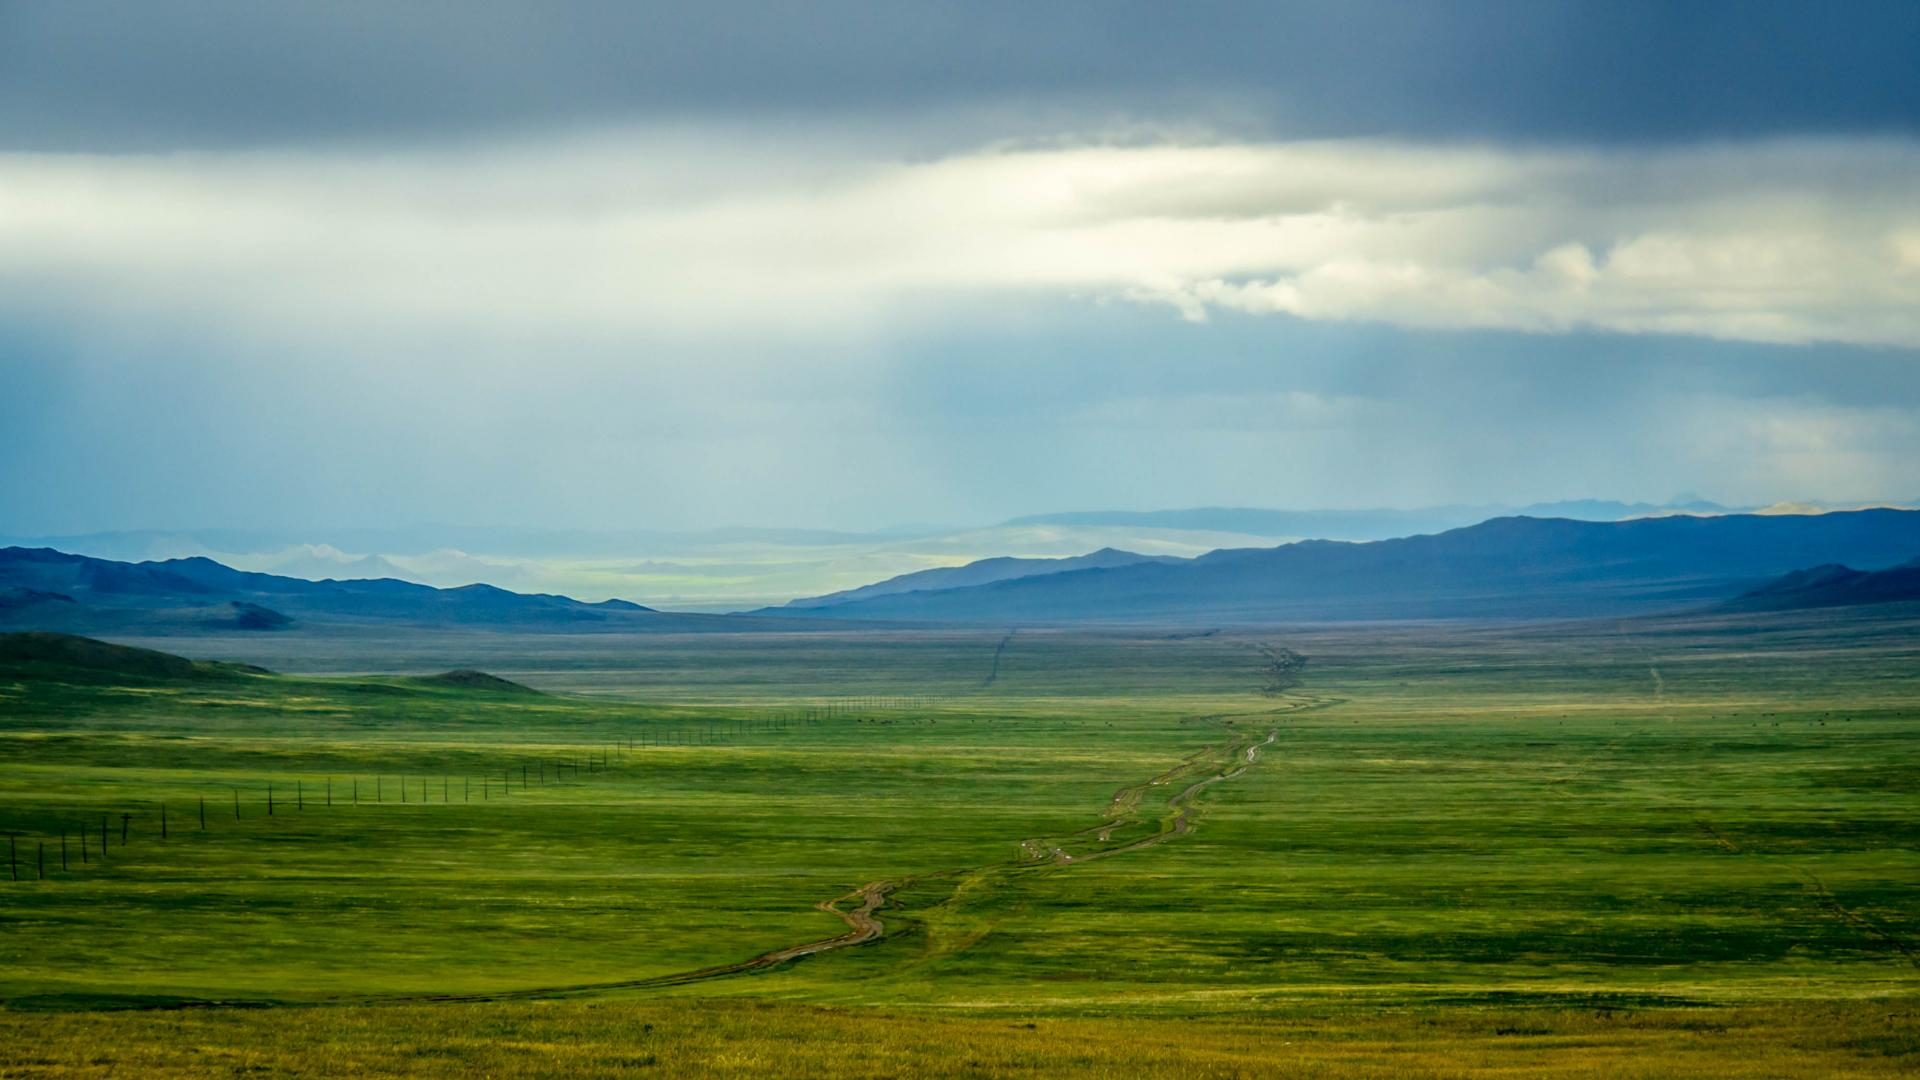 Mongolie53